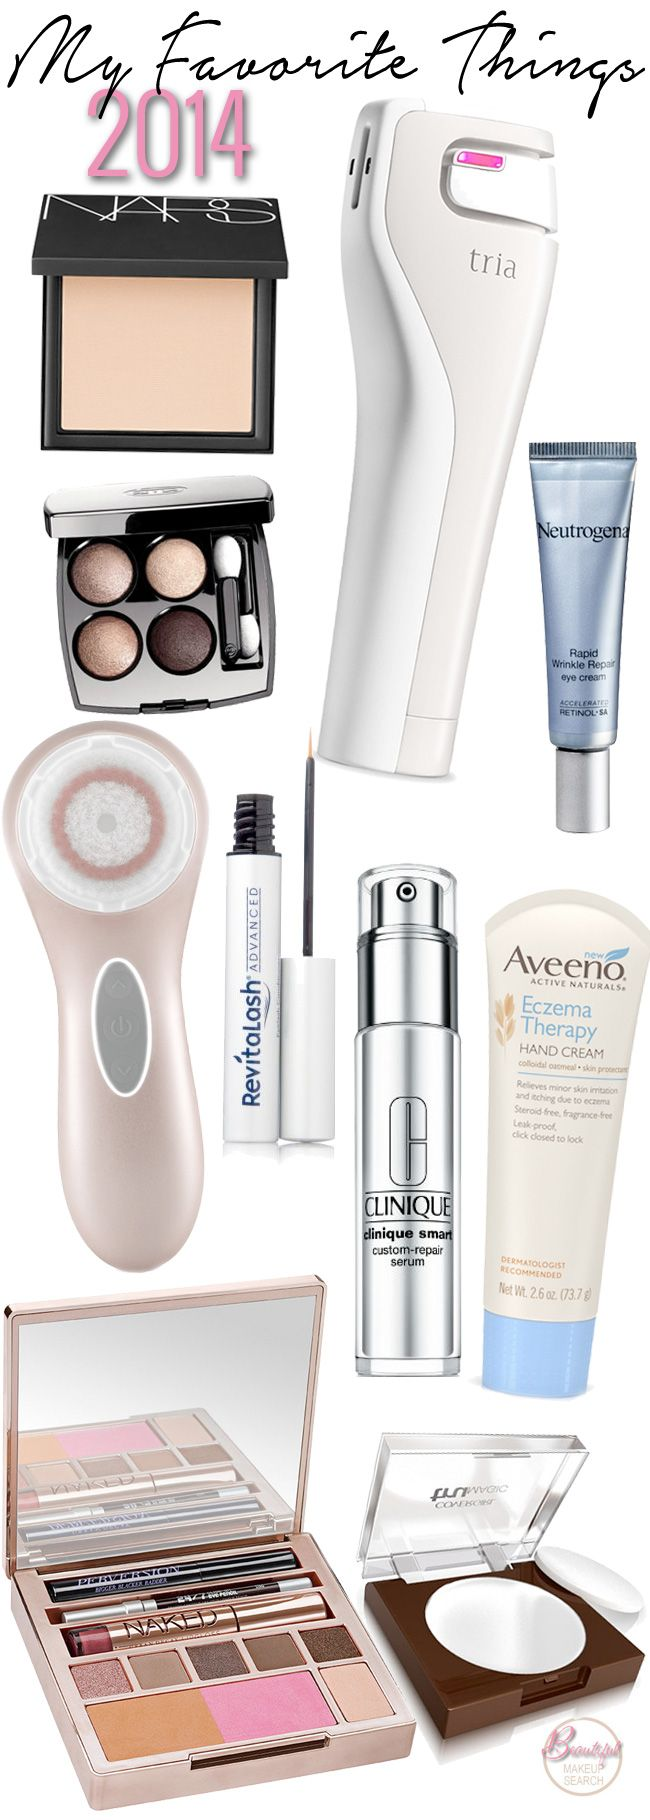 As the year comes to a close, I like to think back to the new beauty products that launched over t...